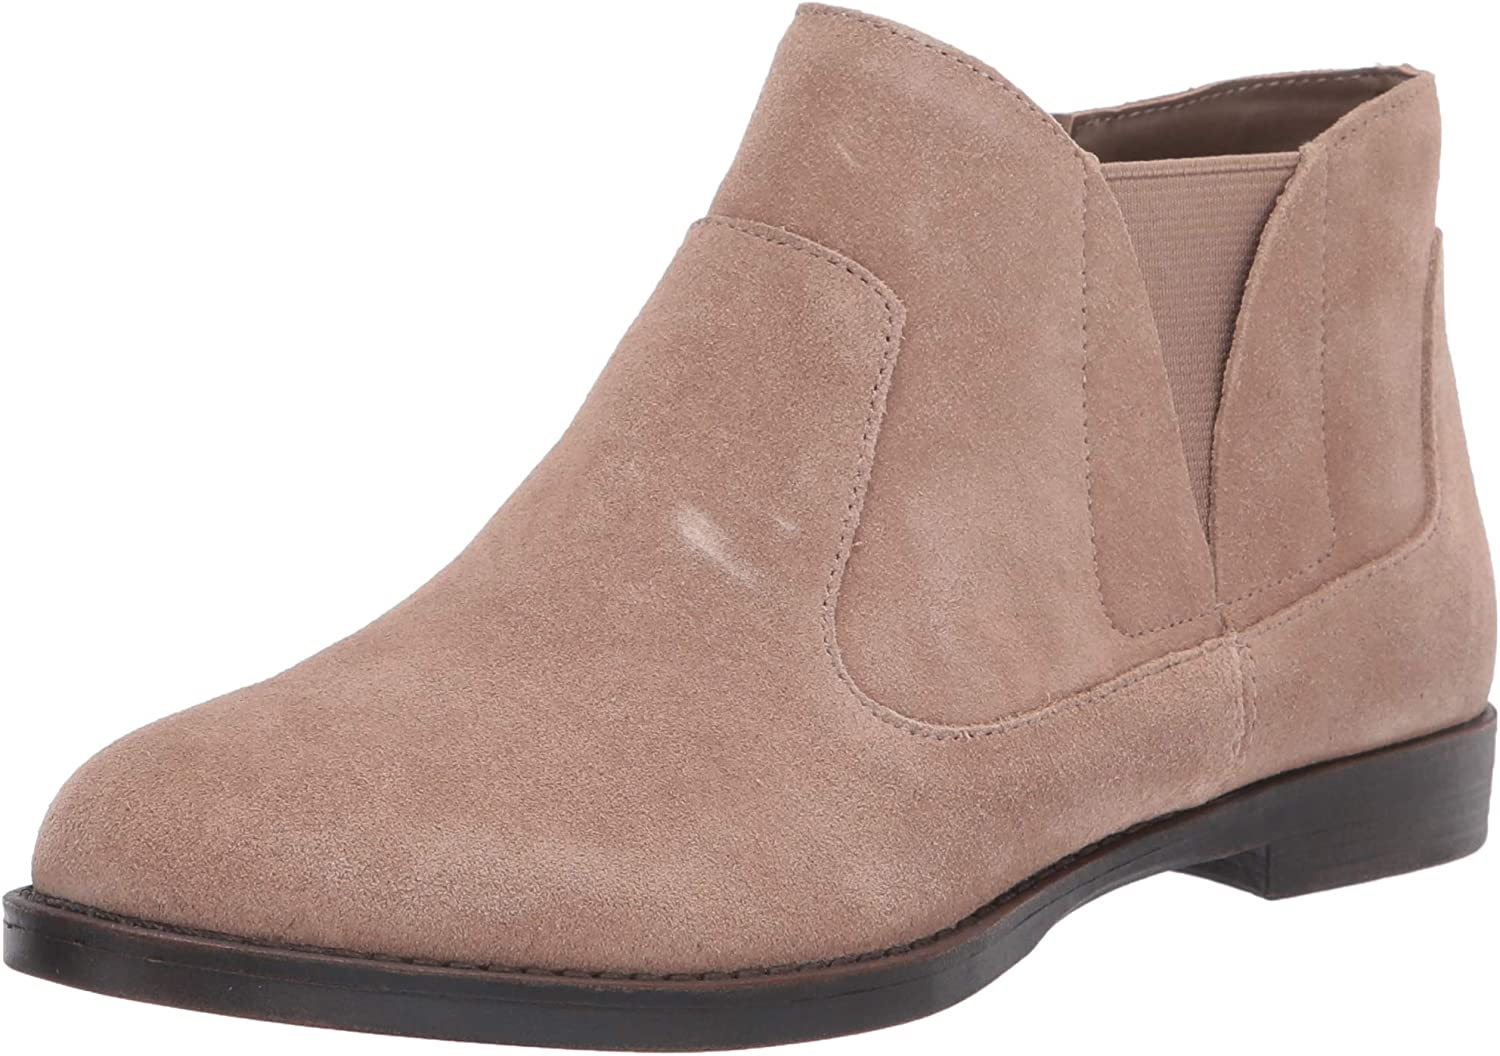 Bella Vita Women's 正規品スーパーSALE×店内全品キャンペーン 返品交換不可 Rory Boot Bootie Ankle